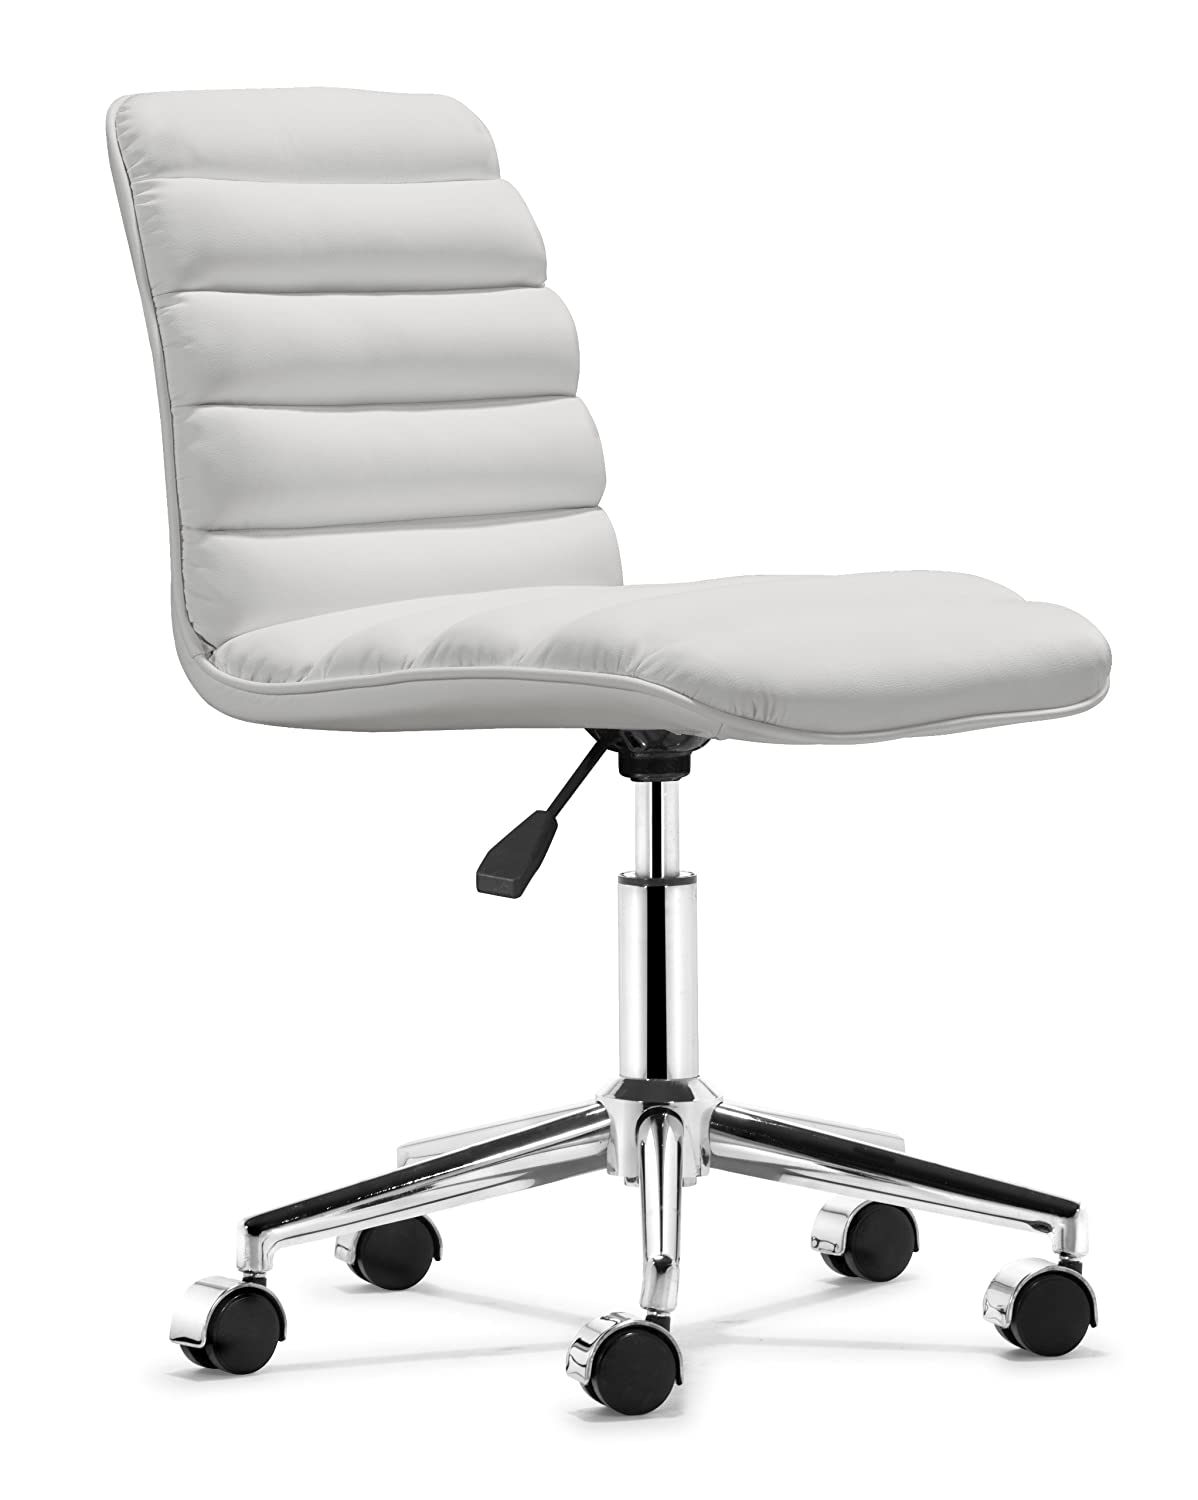 Modern ergonomic office chairs - Amazoncom Zuo Modern Admire Office Chair White Kitchen Dining